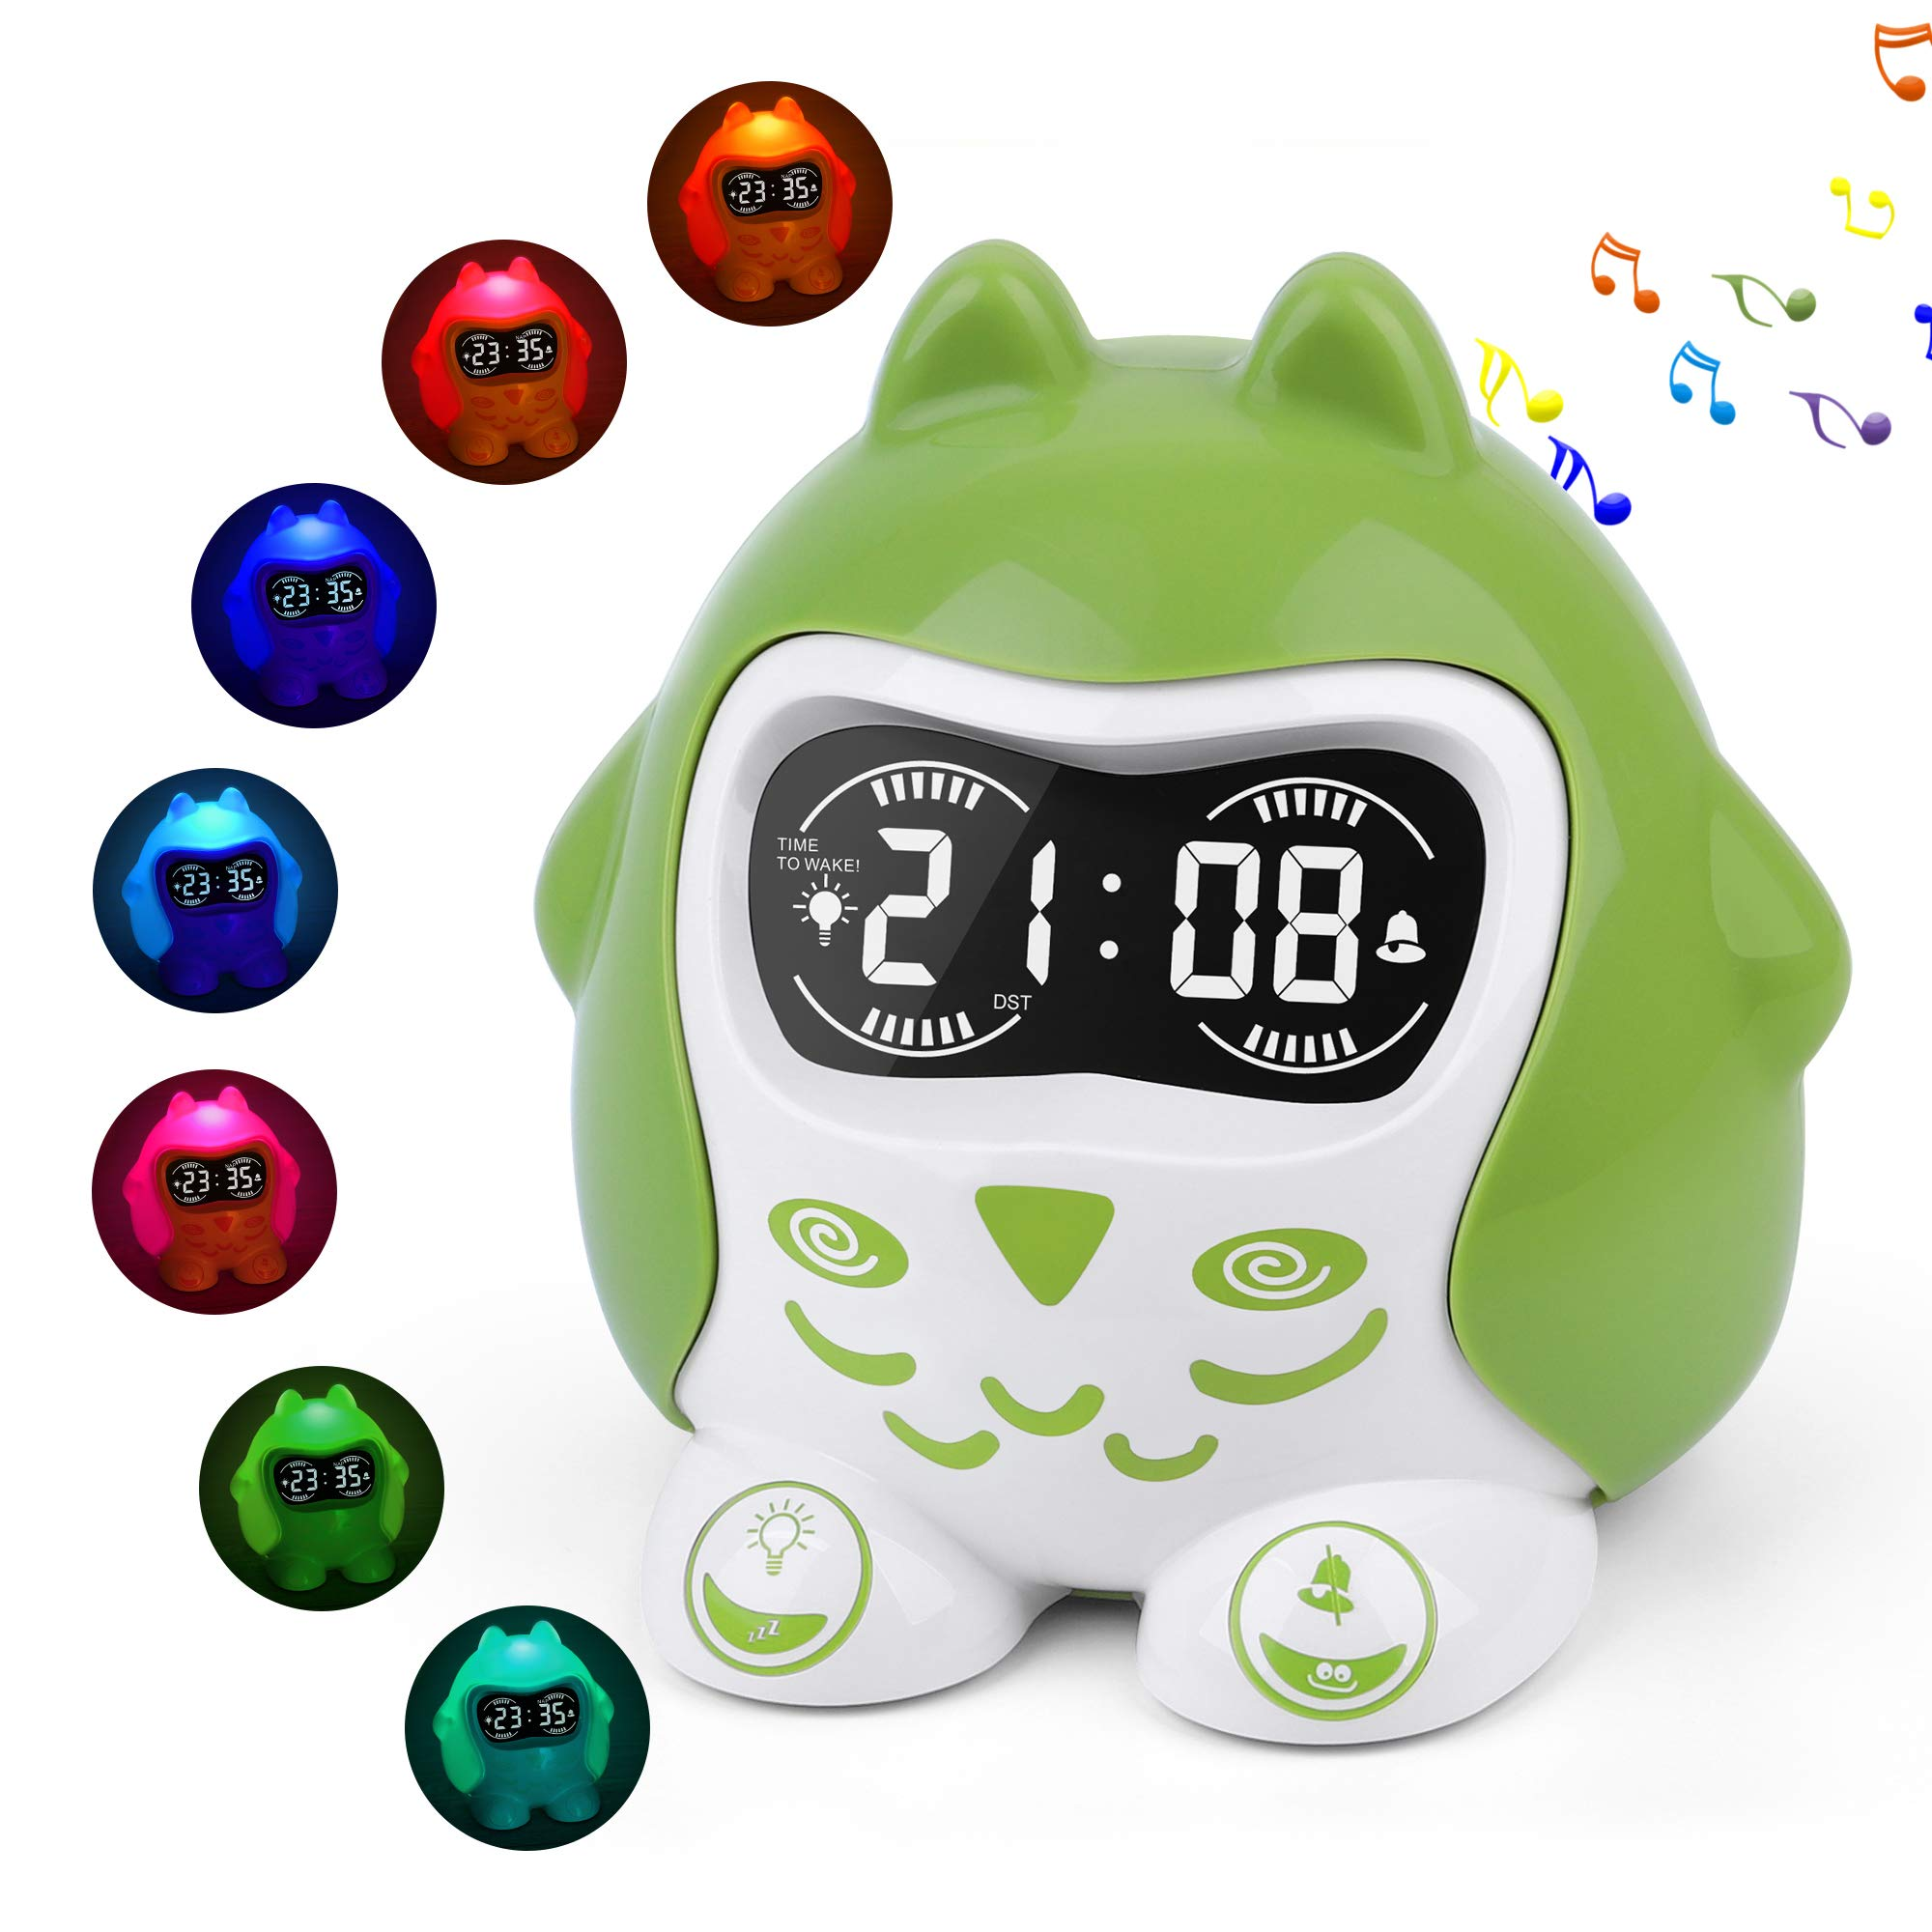 White Noise Sound Machine for Baby Kid Toddler, Sleep Trainer & Time to Wake Digital Alarm Clock for Bedroom,Portable Sleep Soother Night Light with 9 Sounds & Lullaby,Timer,Battery Operated/Plug in by Mesqool